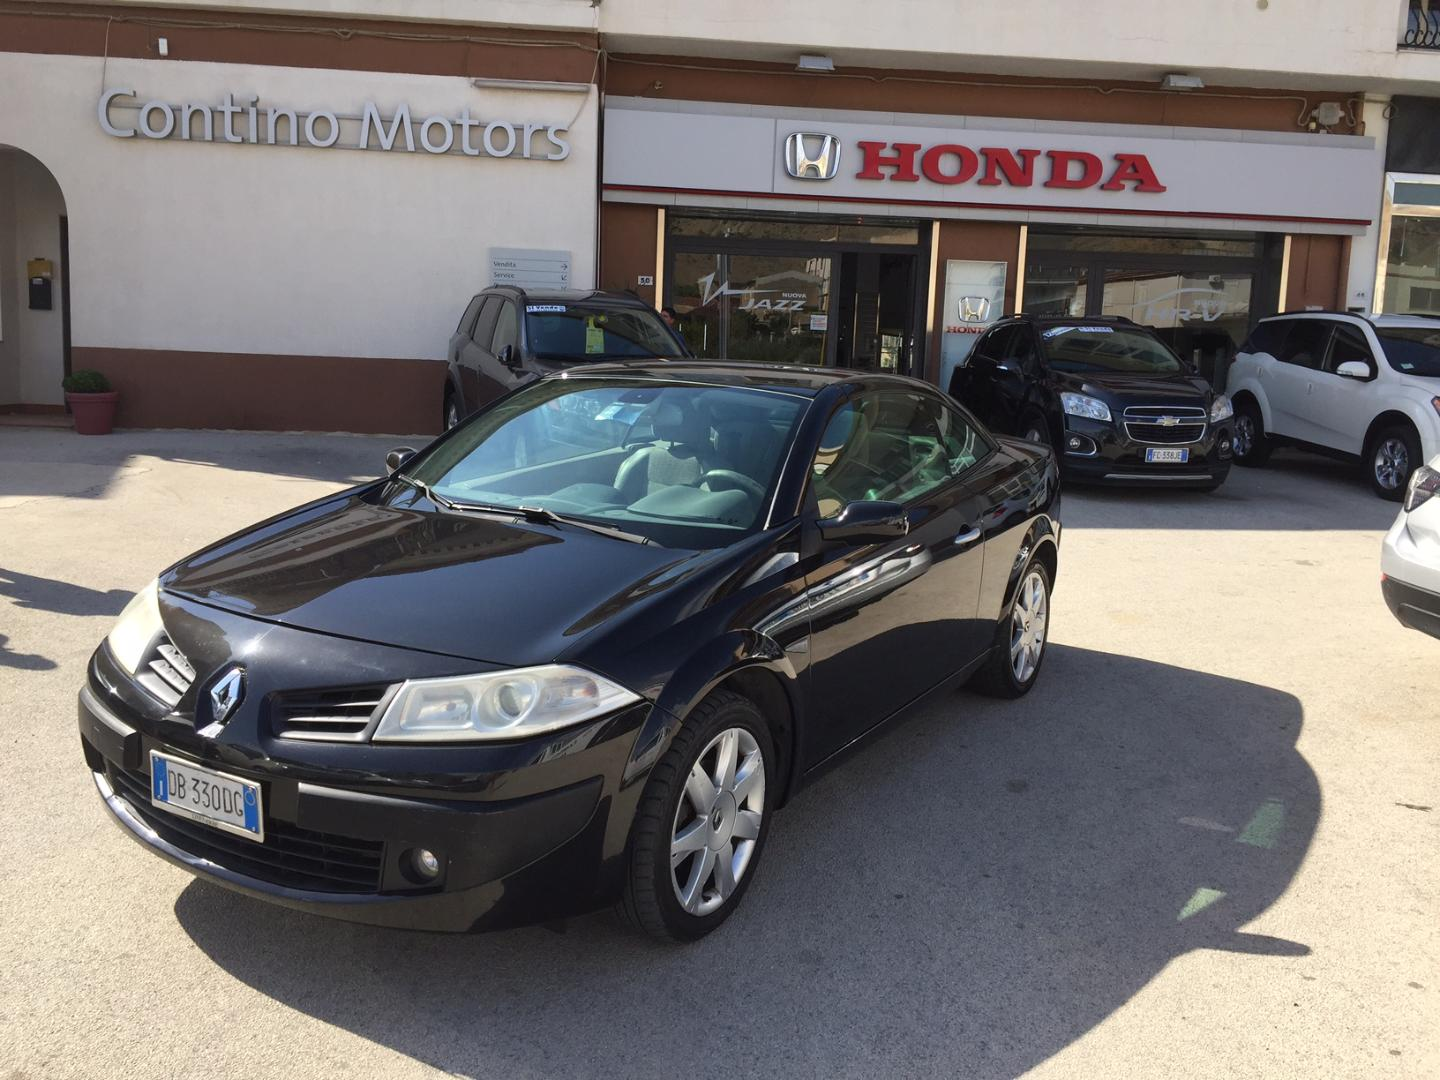 renault megane cabrio 1 9 dci diesel agrigento. Black Bedroom Furniture Sets. Home Design Ideas